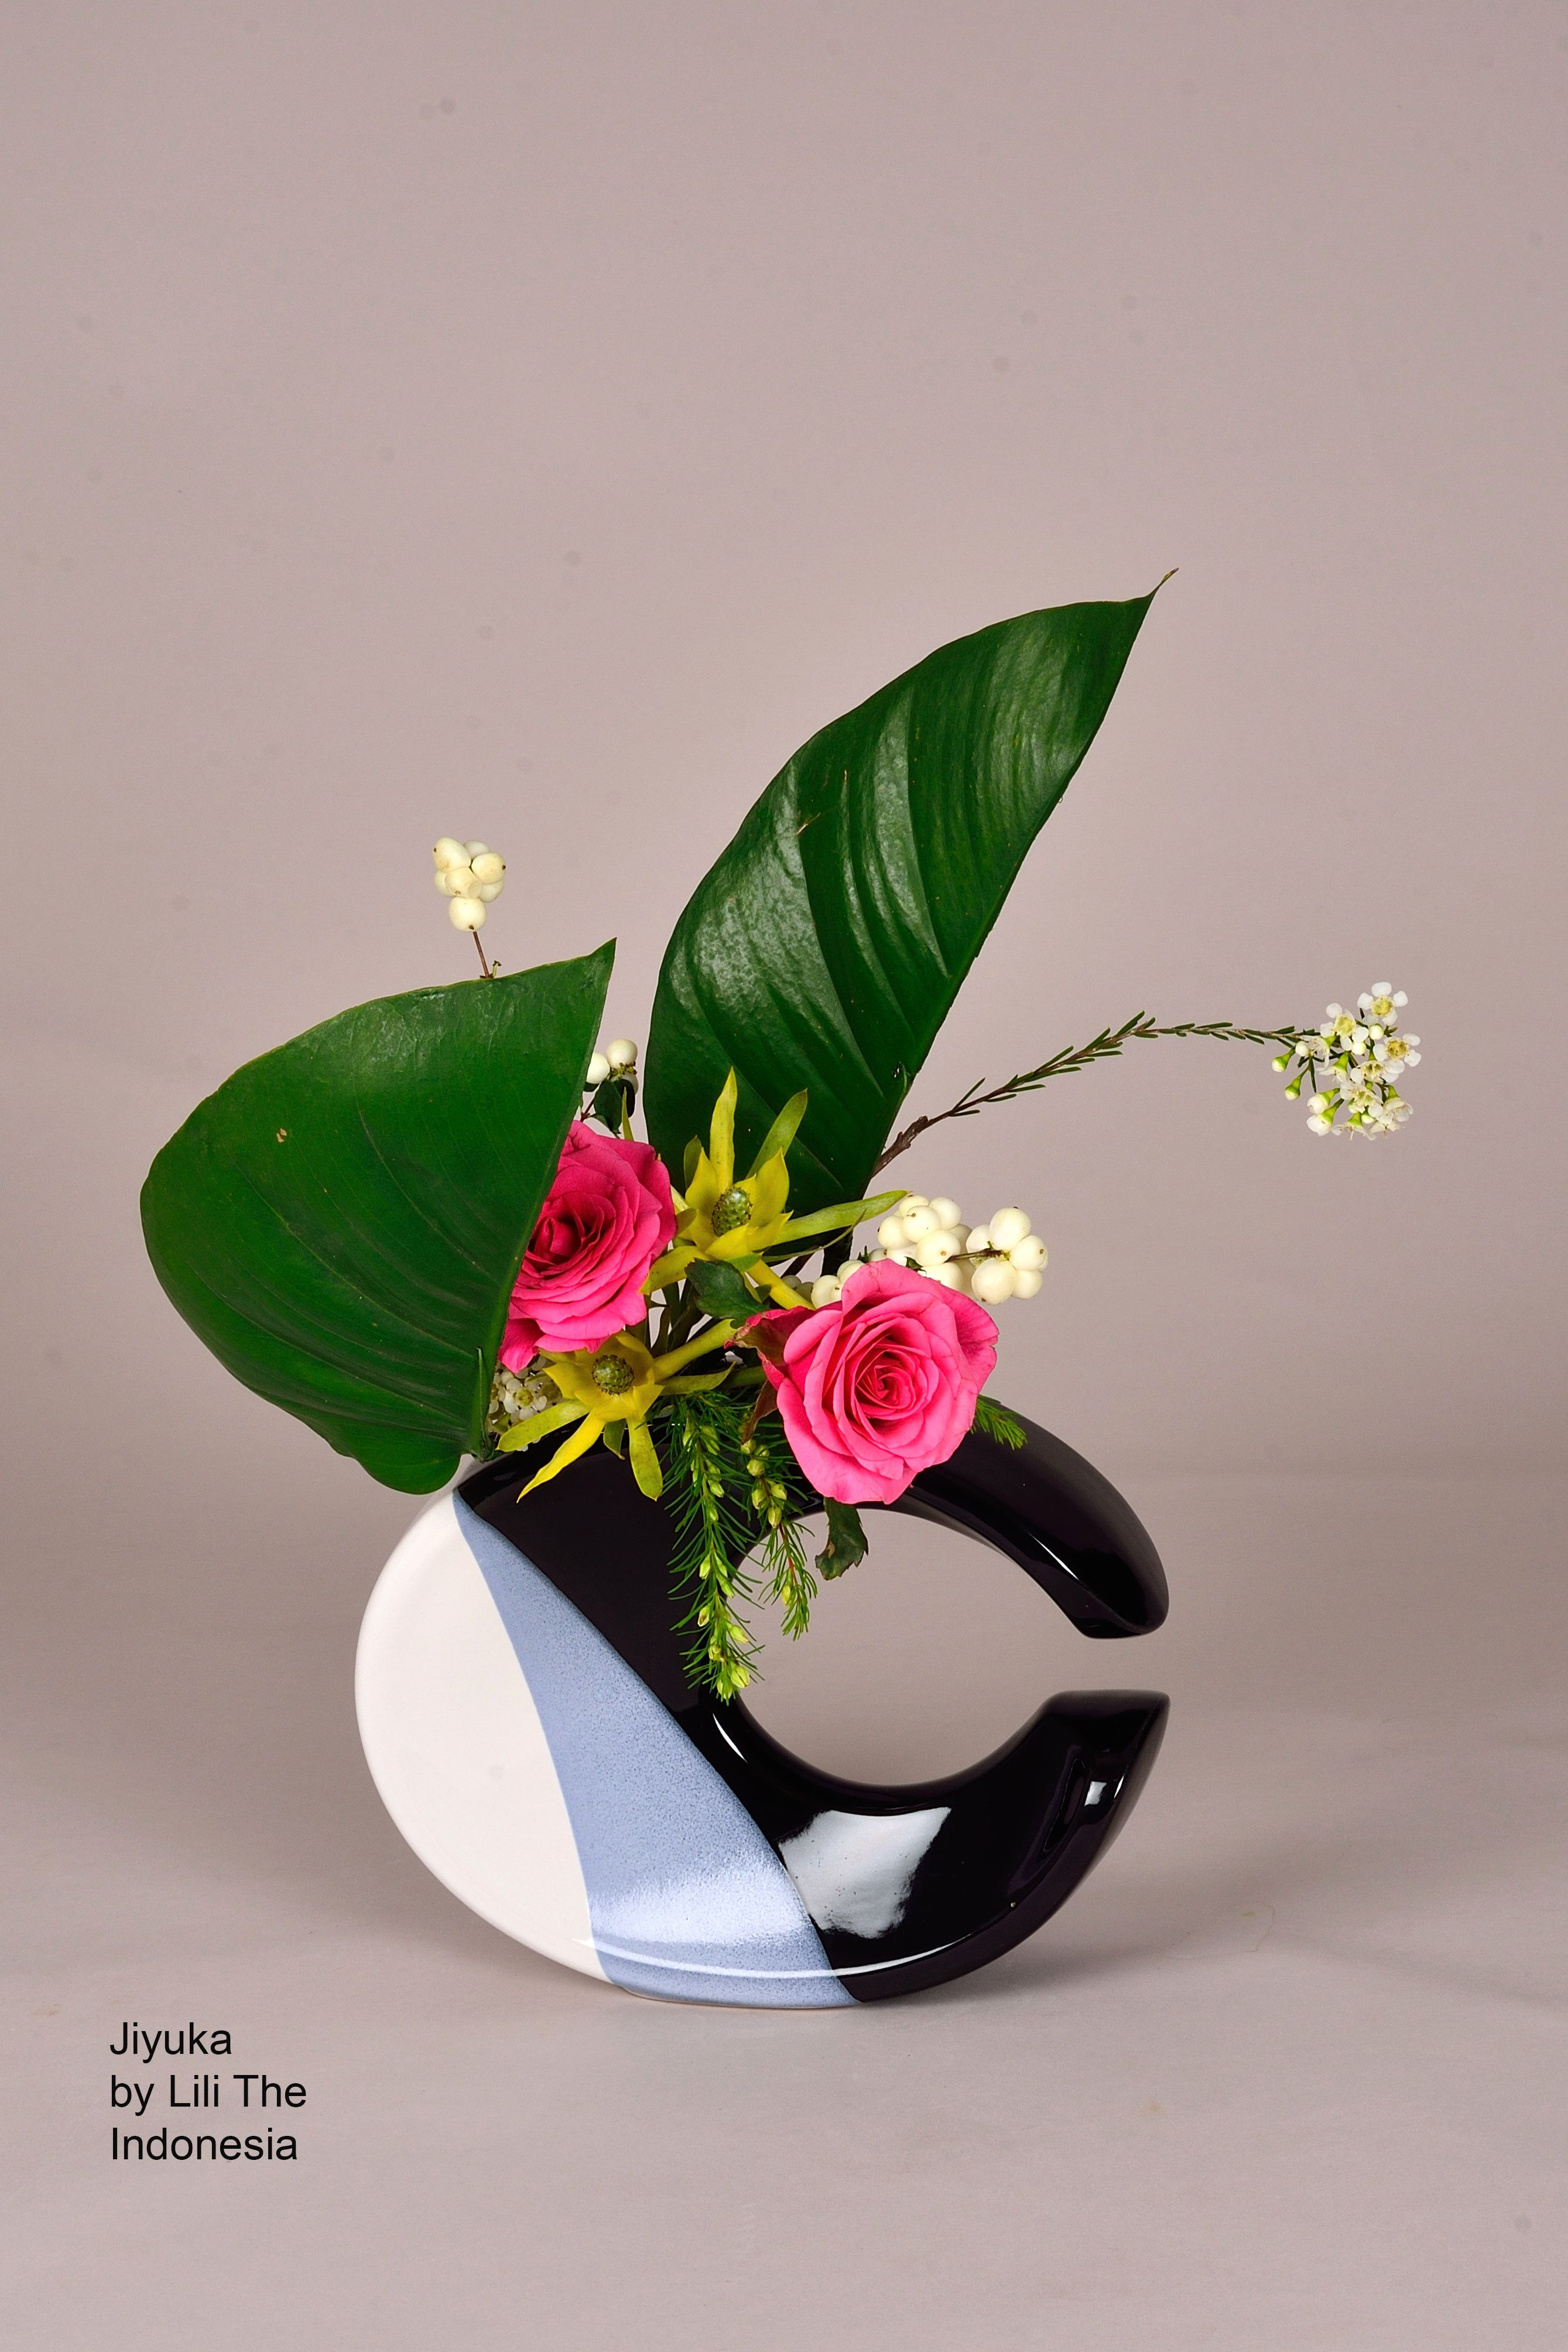 Jiyuka Ikebana Ikenobo By Lili The Indonesia Ikebana Pinterest